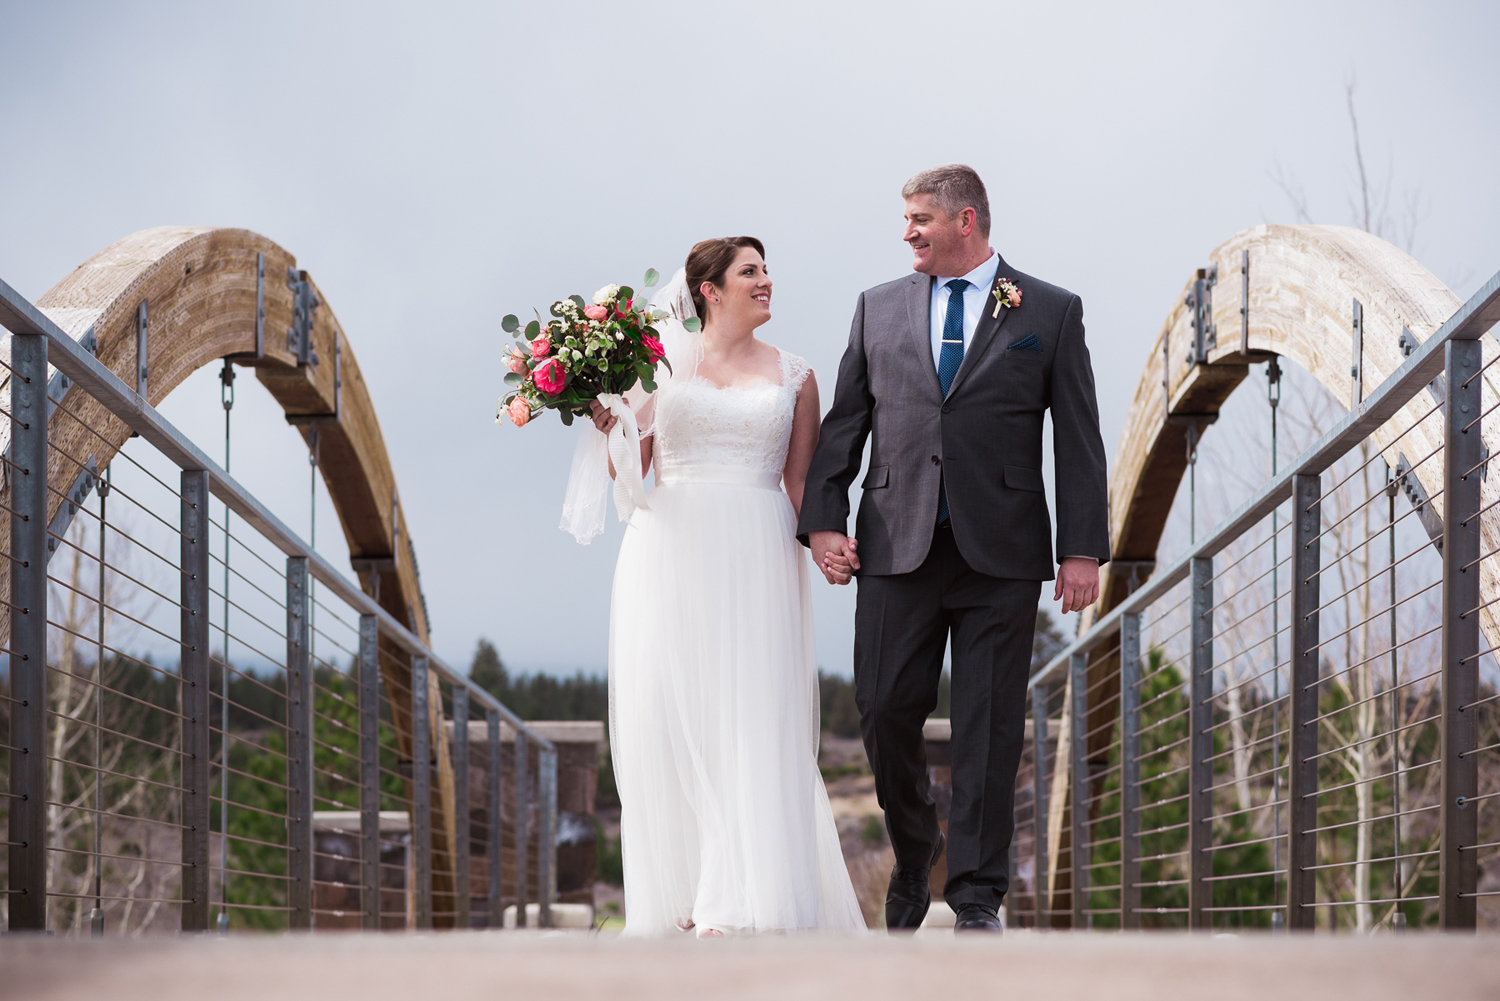 Bridalbliss.com | Bend Wedding | Central Oregon Event Planning and Design | Joe Kline Photography